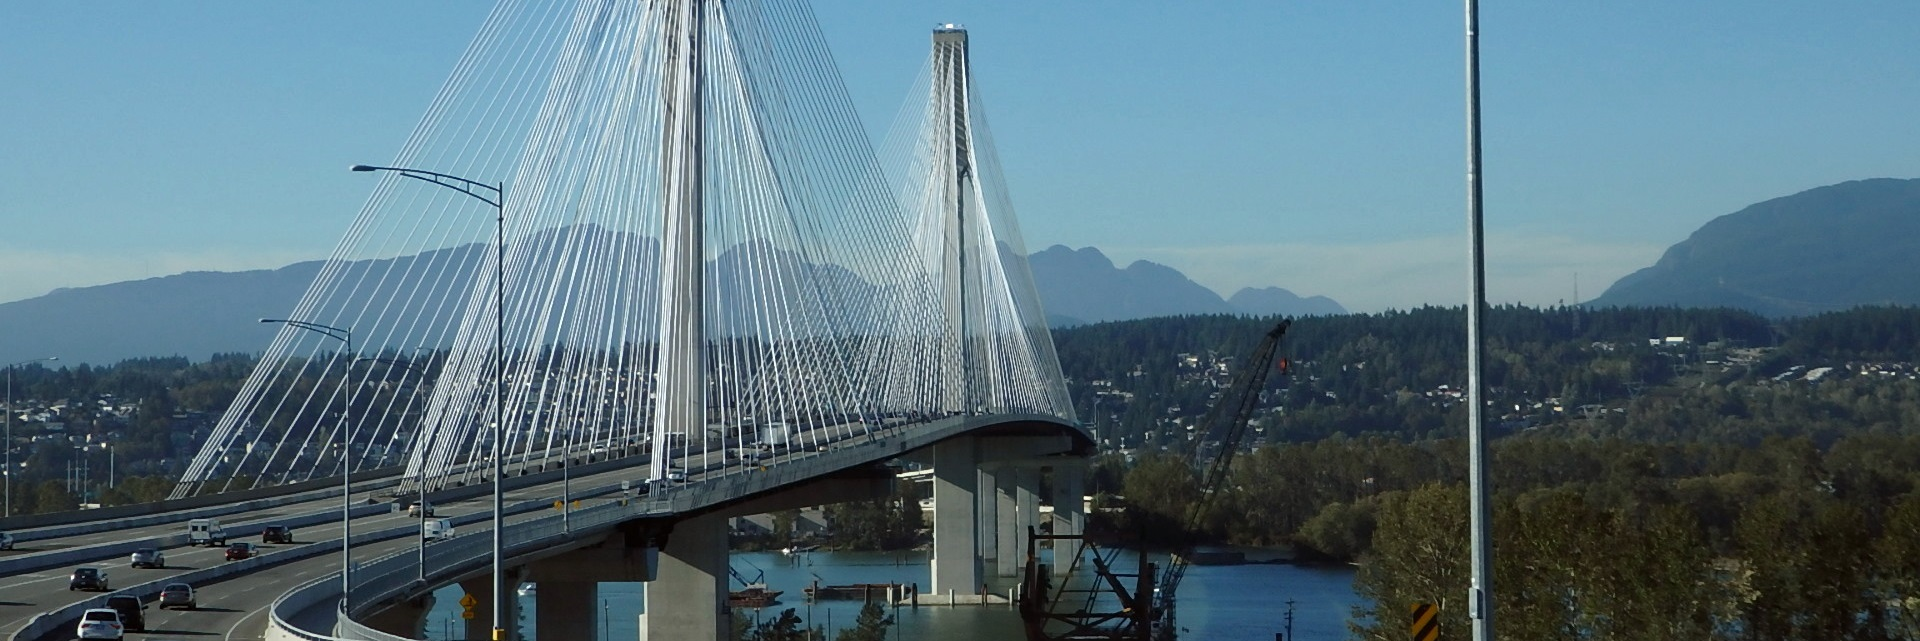 Transportation Safety Projects - Port Mann Bridge